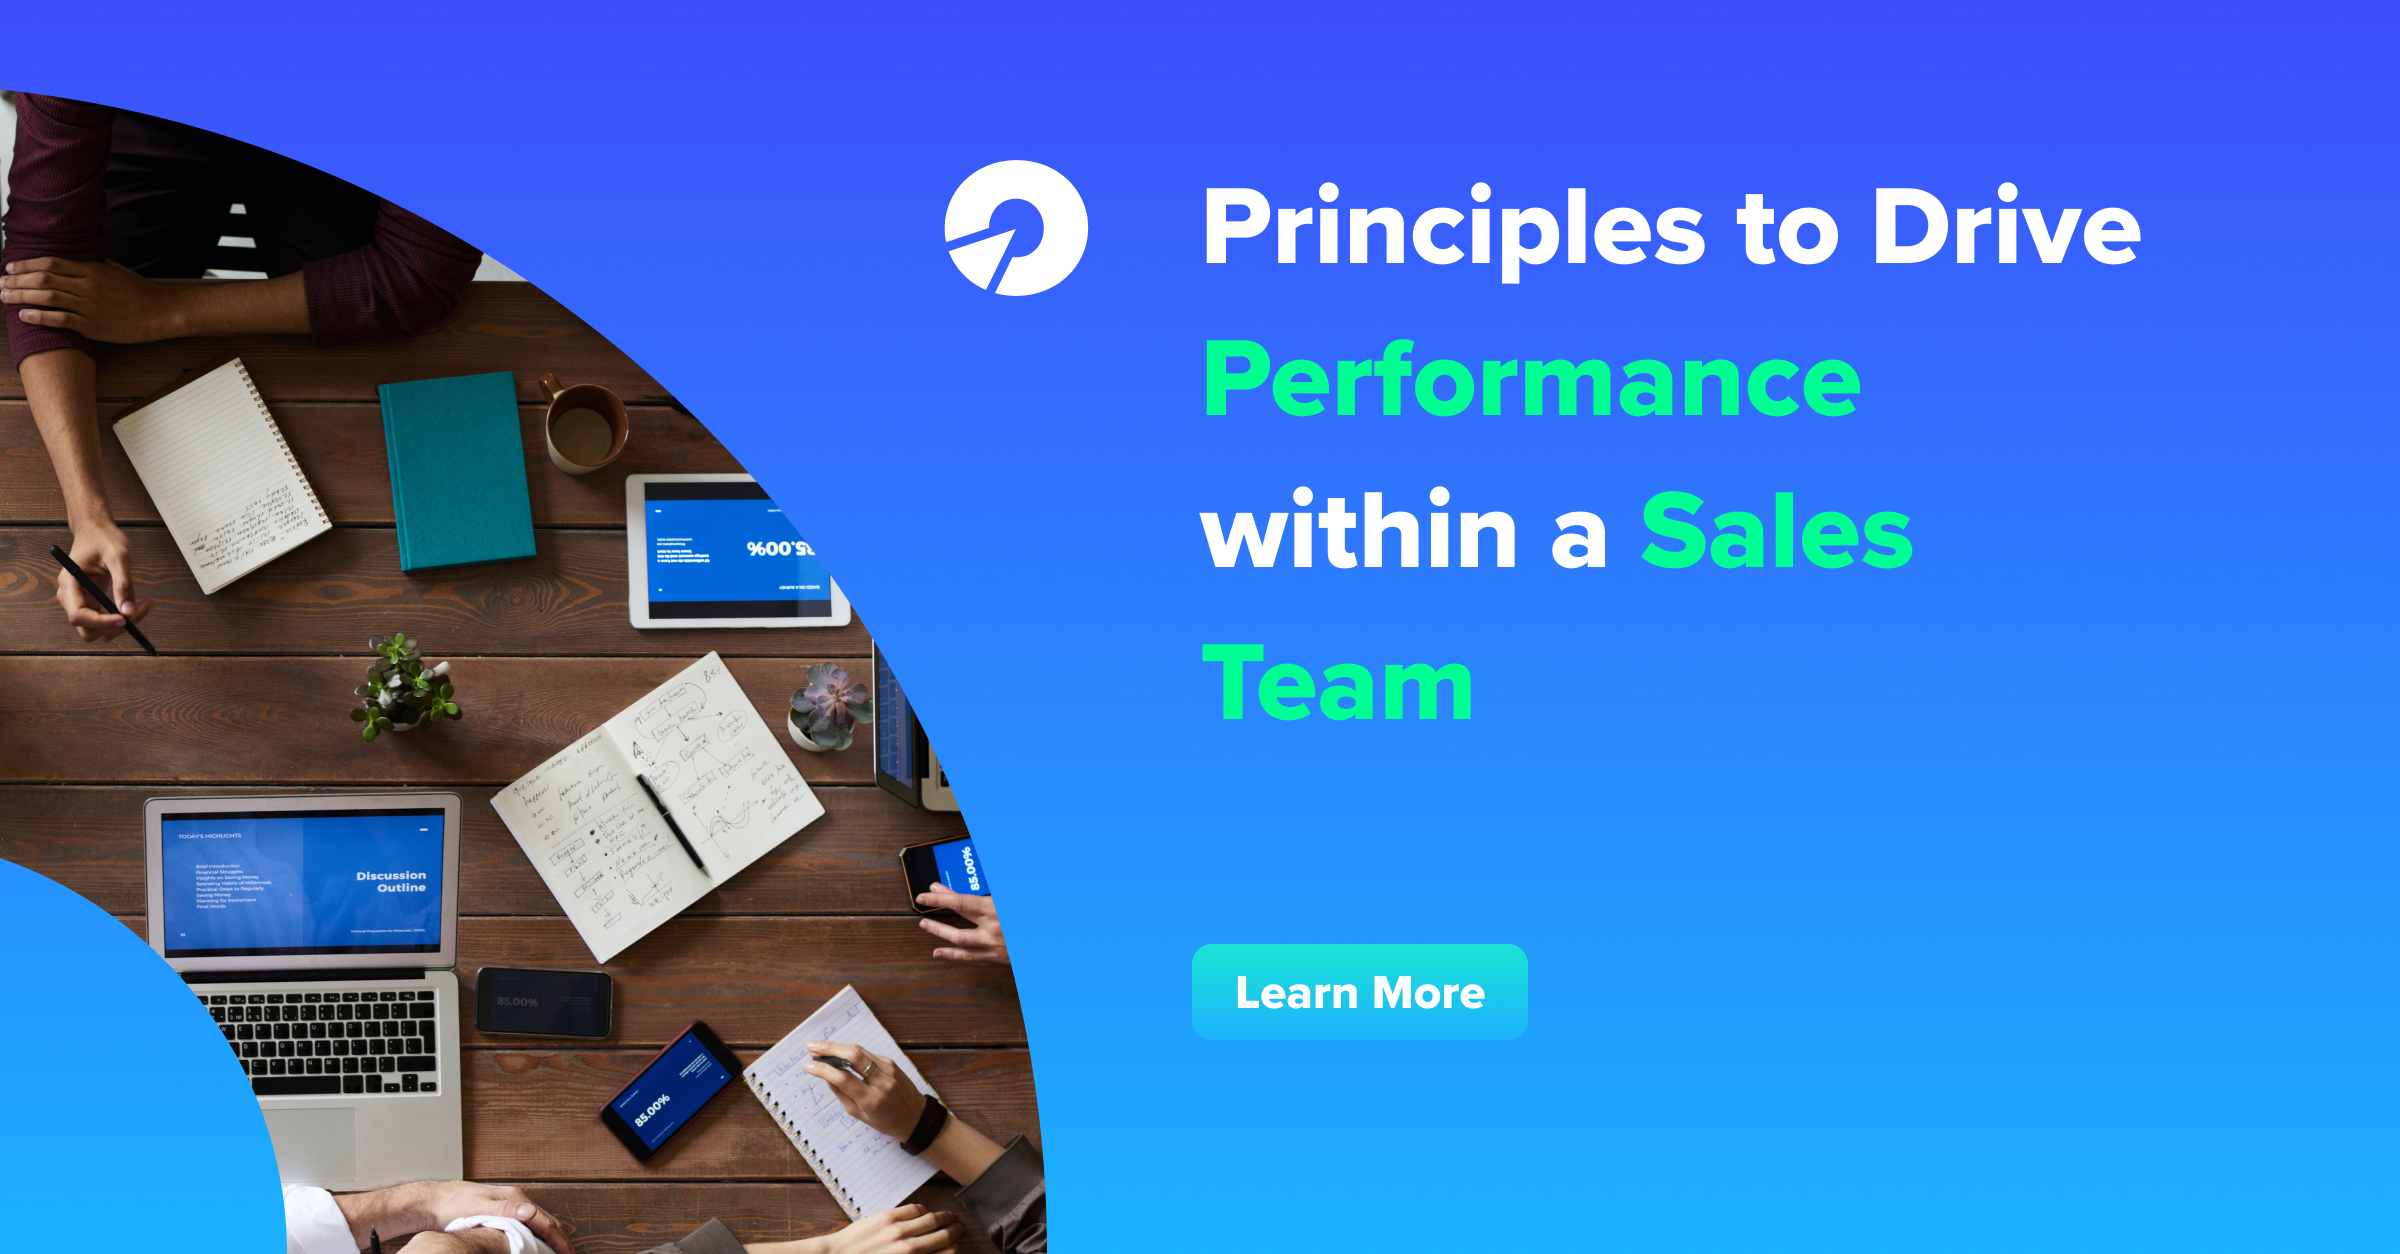 Principles to Drive Performance within a Sales Team